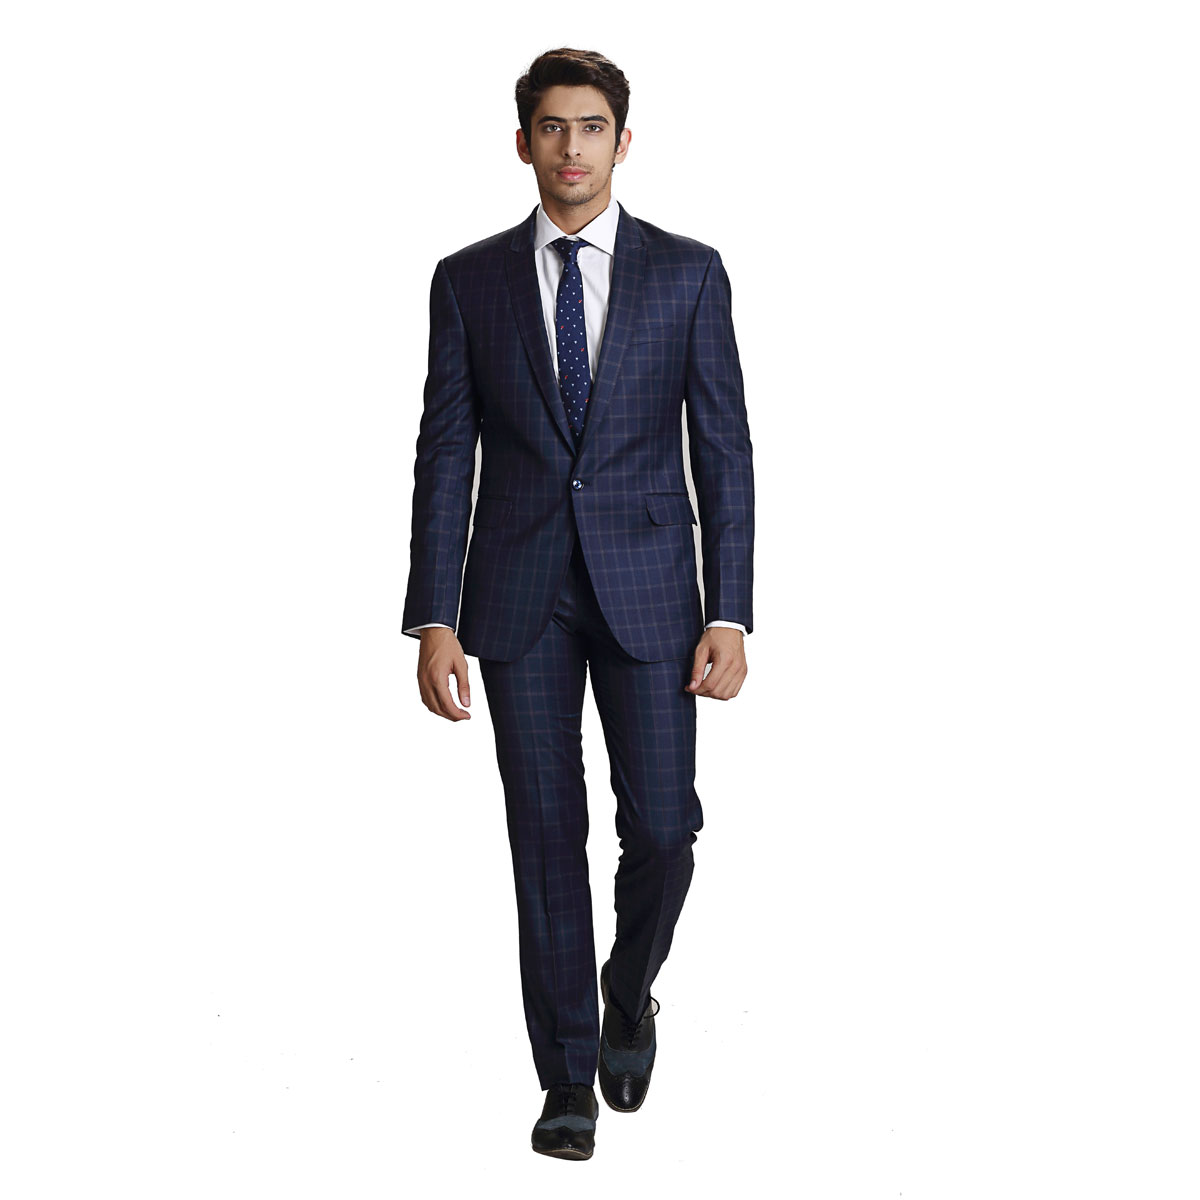 Blue Euphoria Check Suit - Best Bespoke Suits. Premium Custom